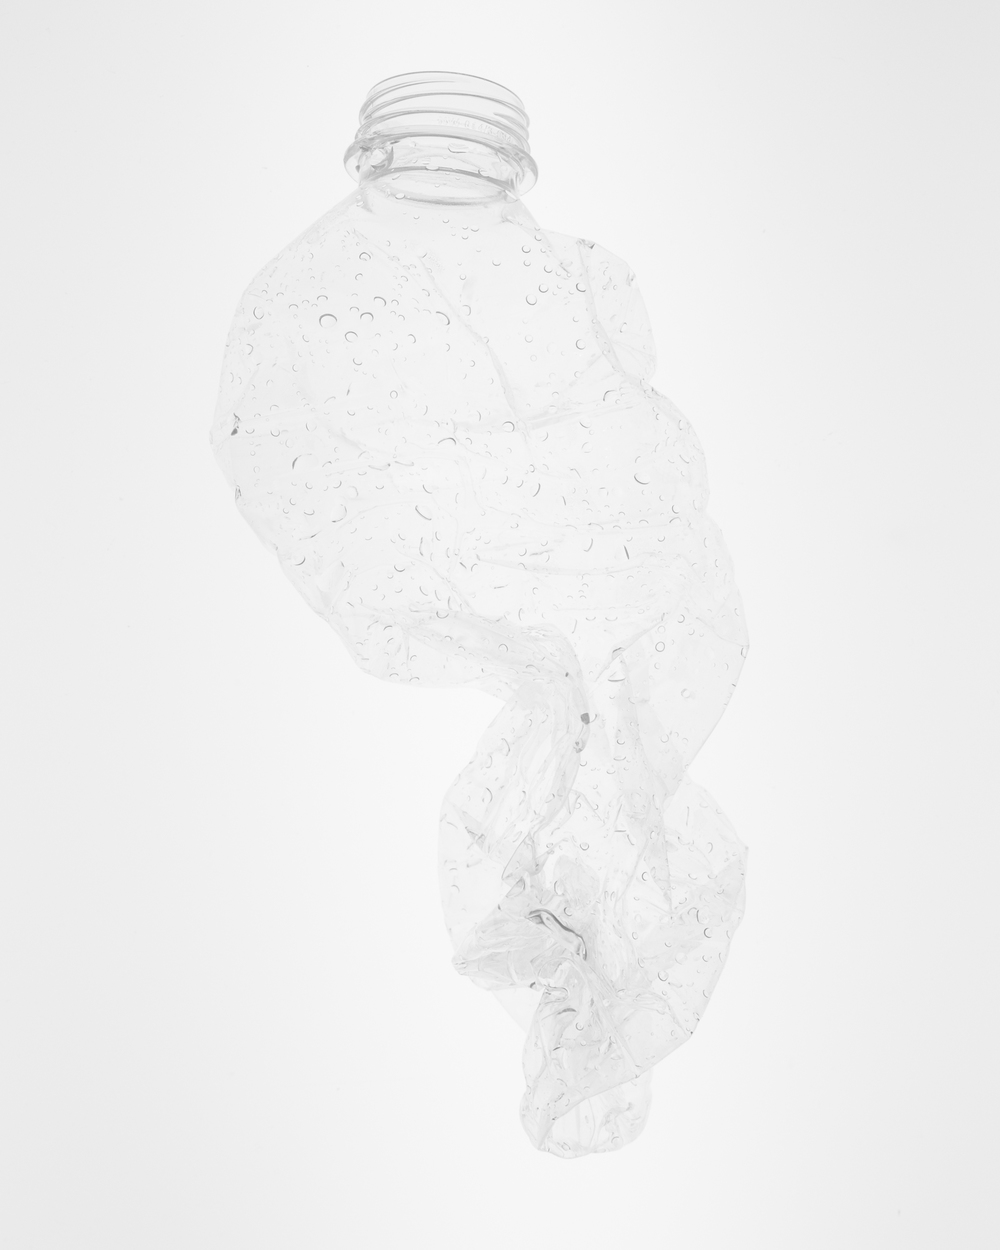 Bottle No.28, 10x8, Inkjet Print, 2014